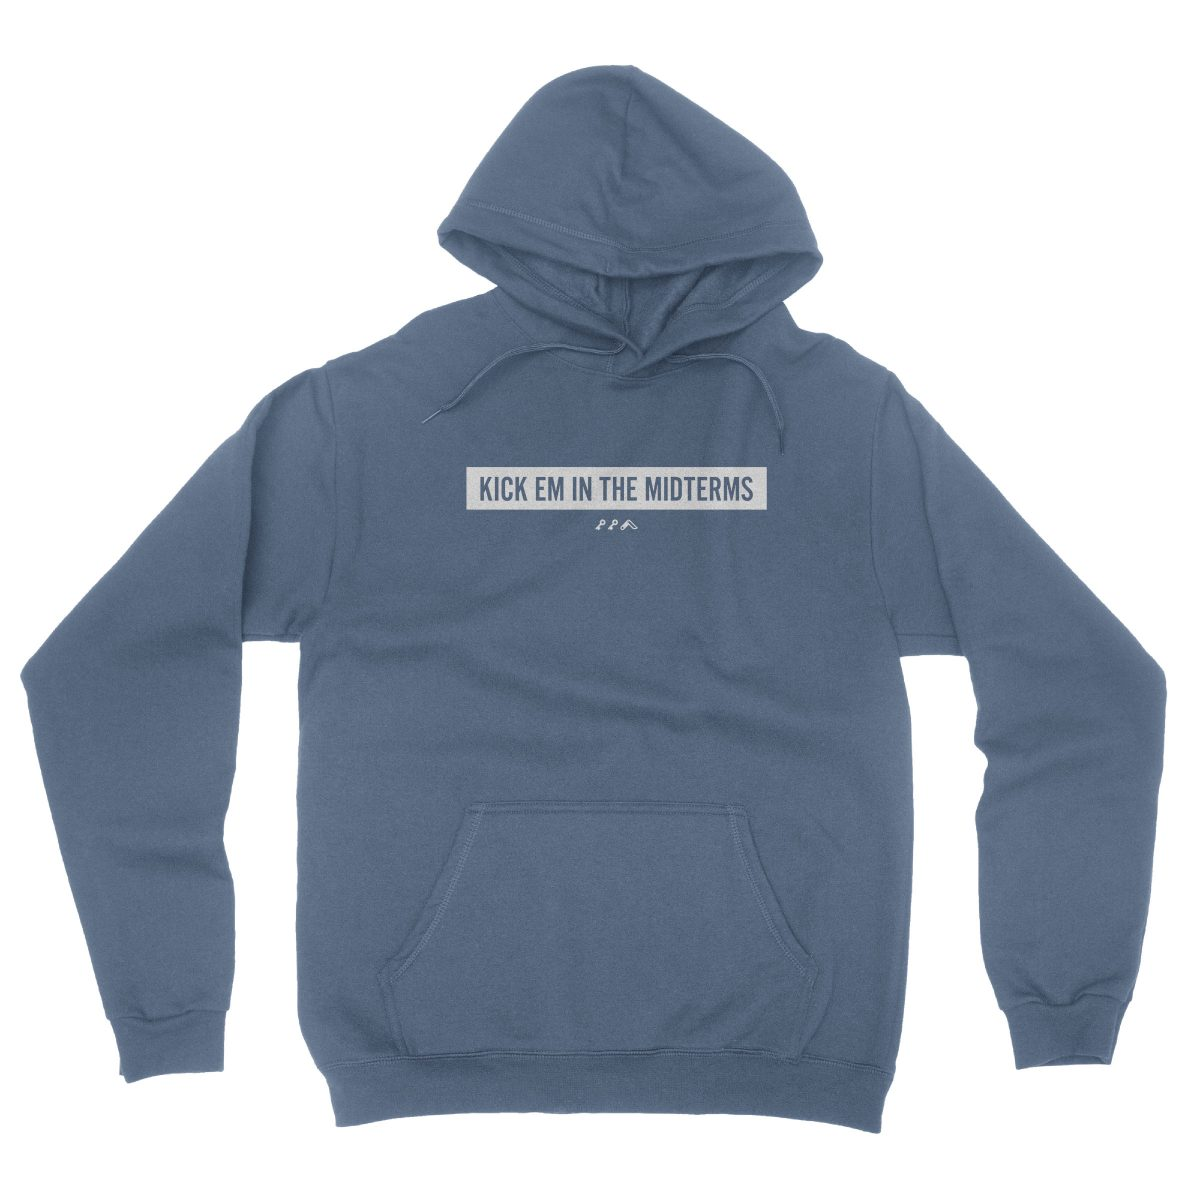 """KICK EM IN THE MIDTERMS"" funny political hoodie in indigo"